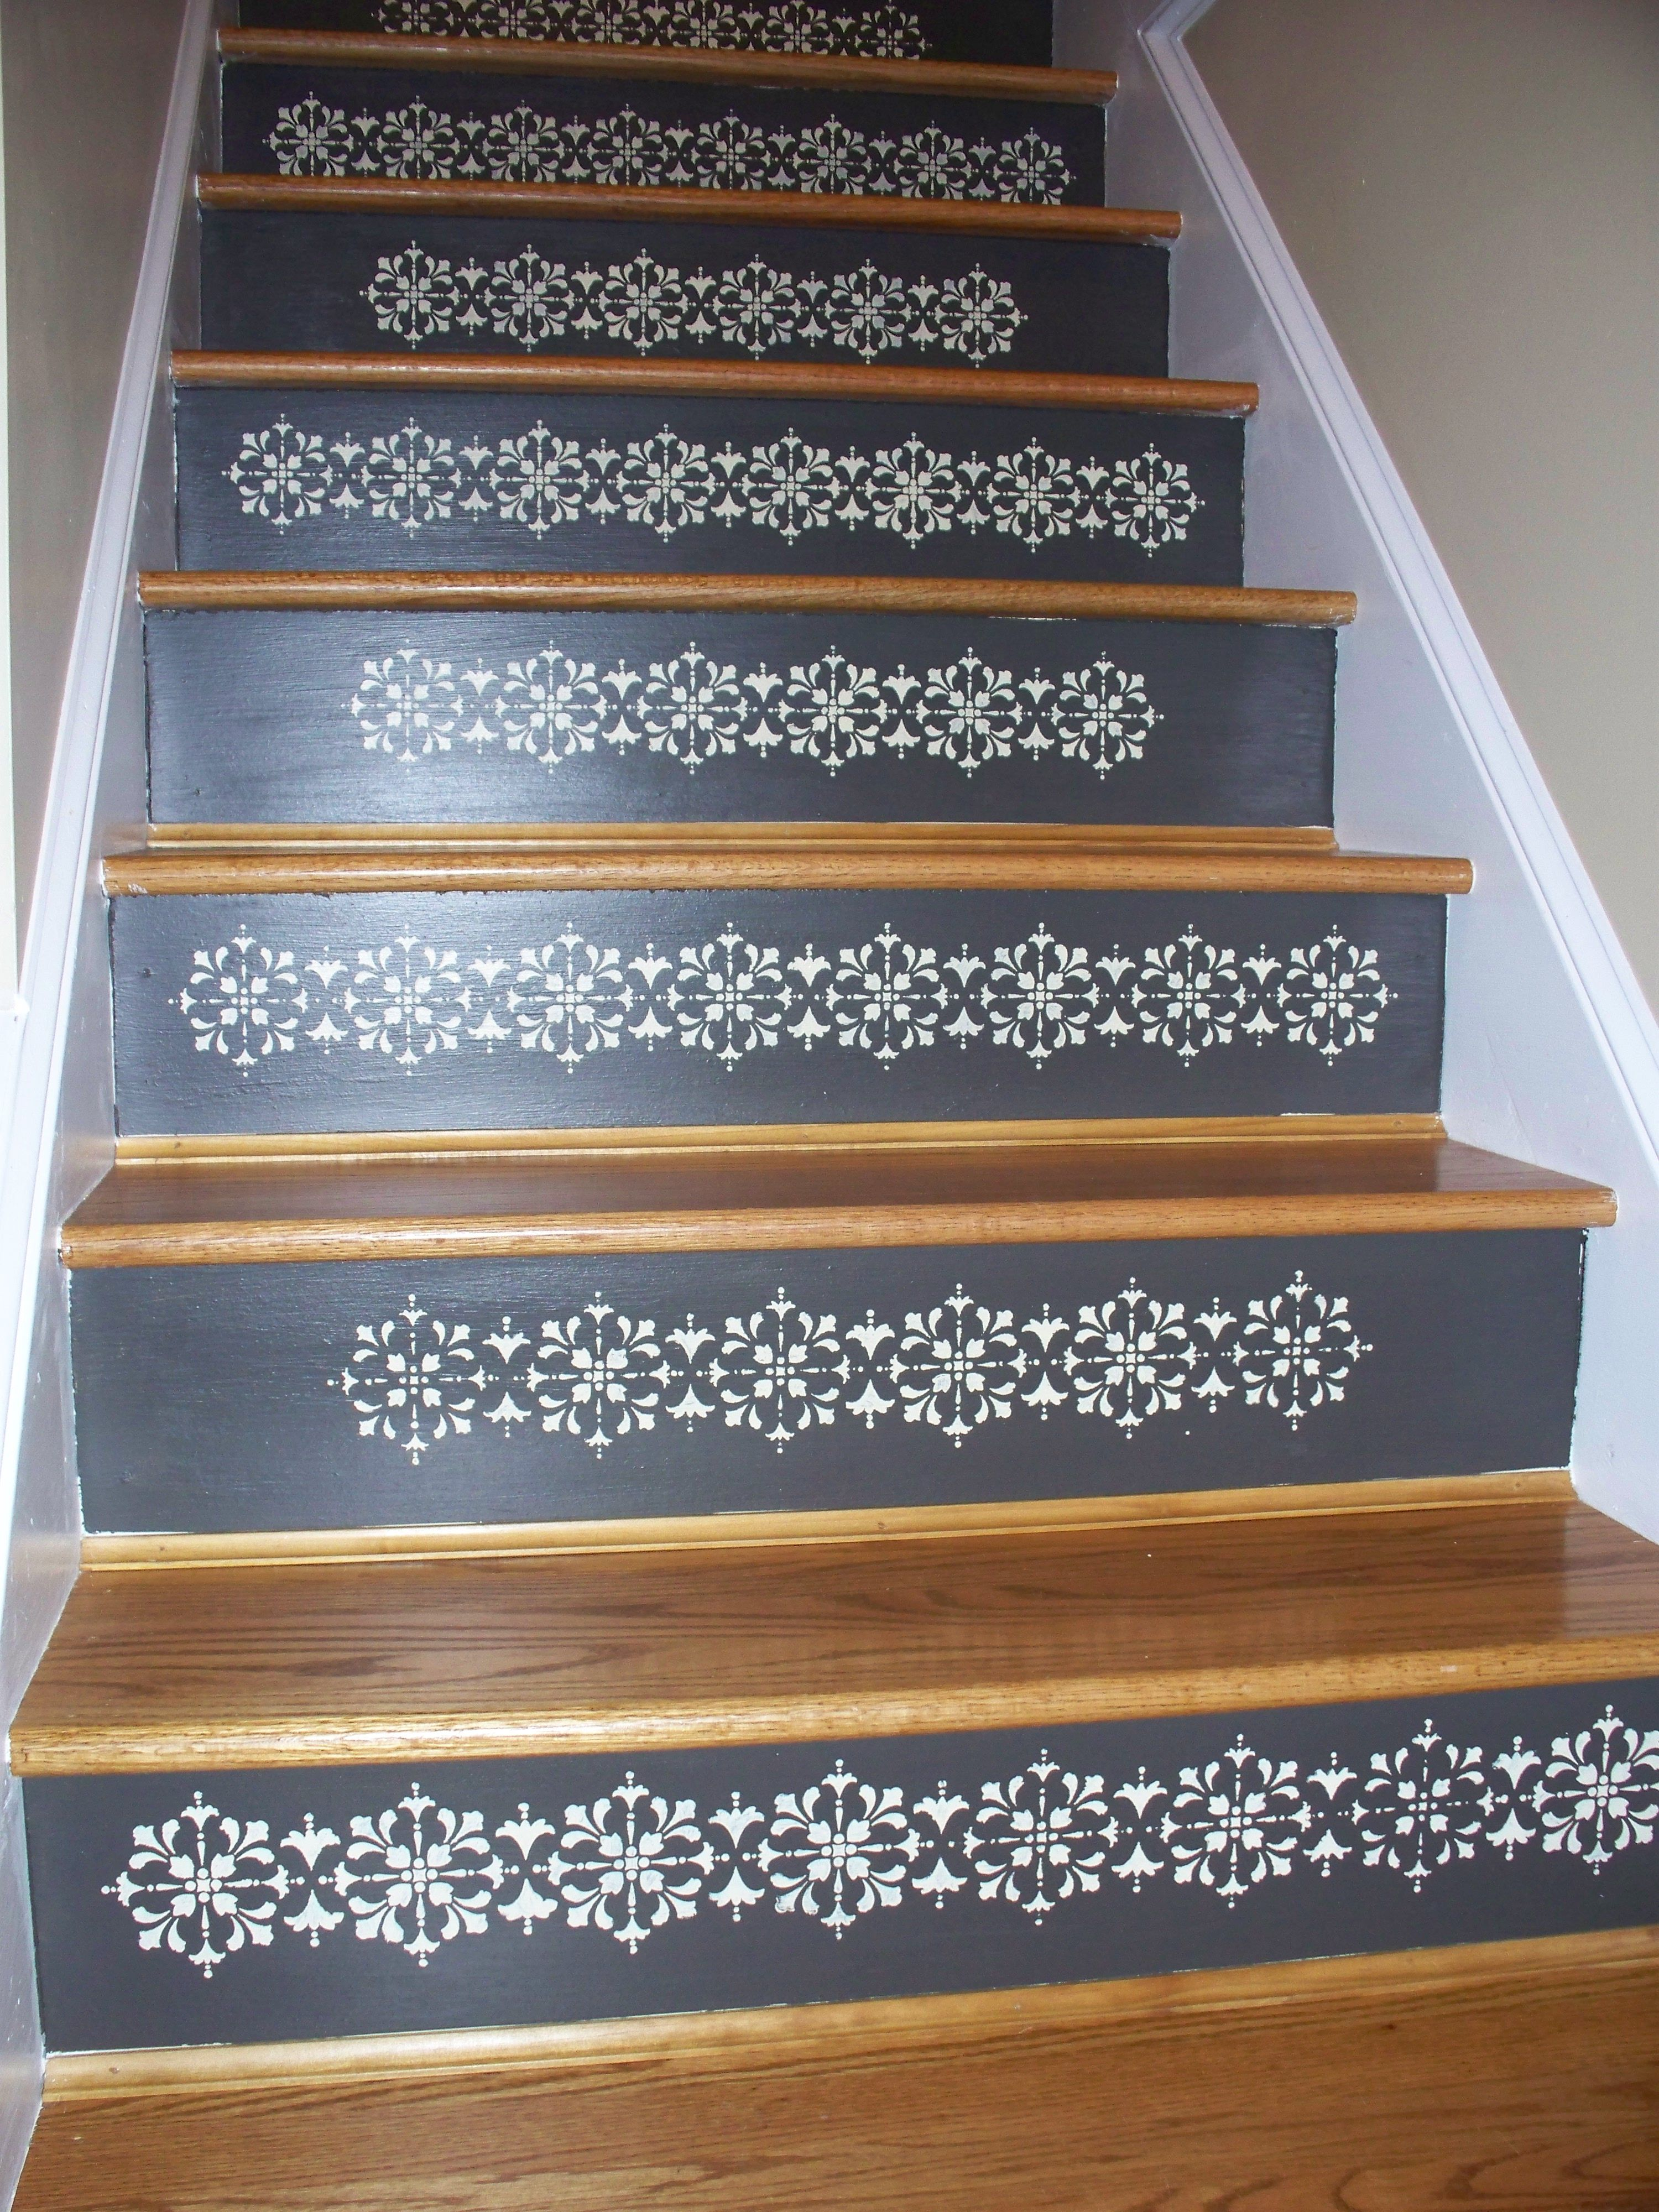 Stenciling on stairs Things I ve made Pinterest